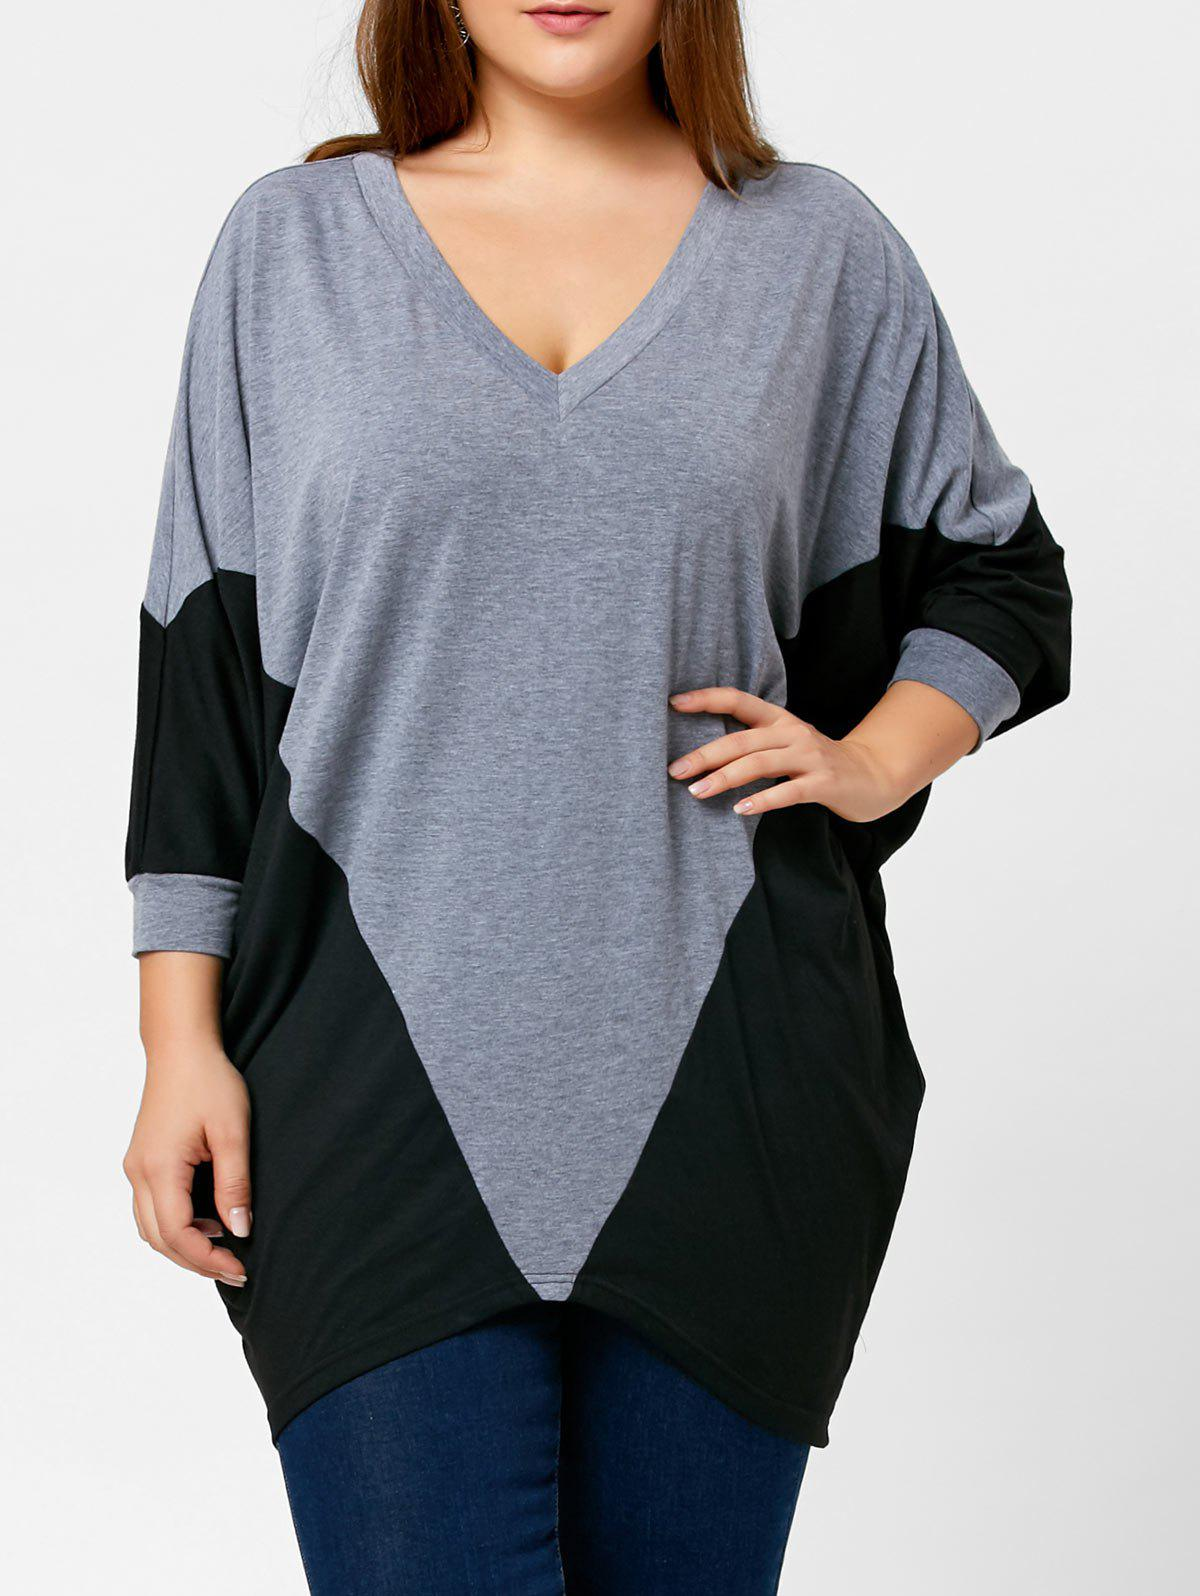 Two Tone Plus Size Dolman Sleeve TopWOMEN<br><br>Size: XL; Color: BLACK AND GREY; Material: Polyester,Spandex; Shirt Length: Long; Sleeve Length: Three Quarter; Collar: V-Neck; Style: Casual; Season: Fall,Spring; Pattern Type: Others; Weight: 0.3750kg; Package Contents: 1 x Top;